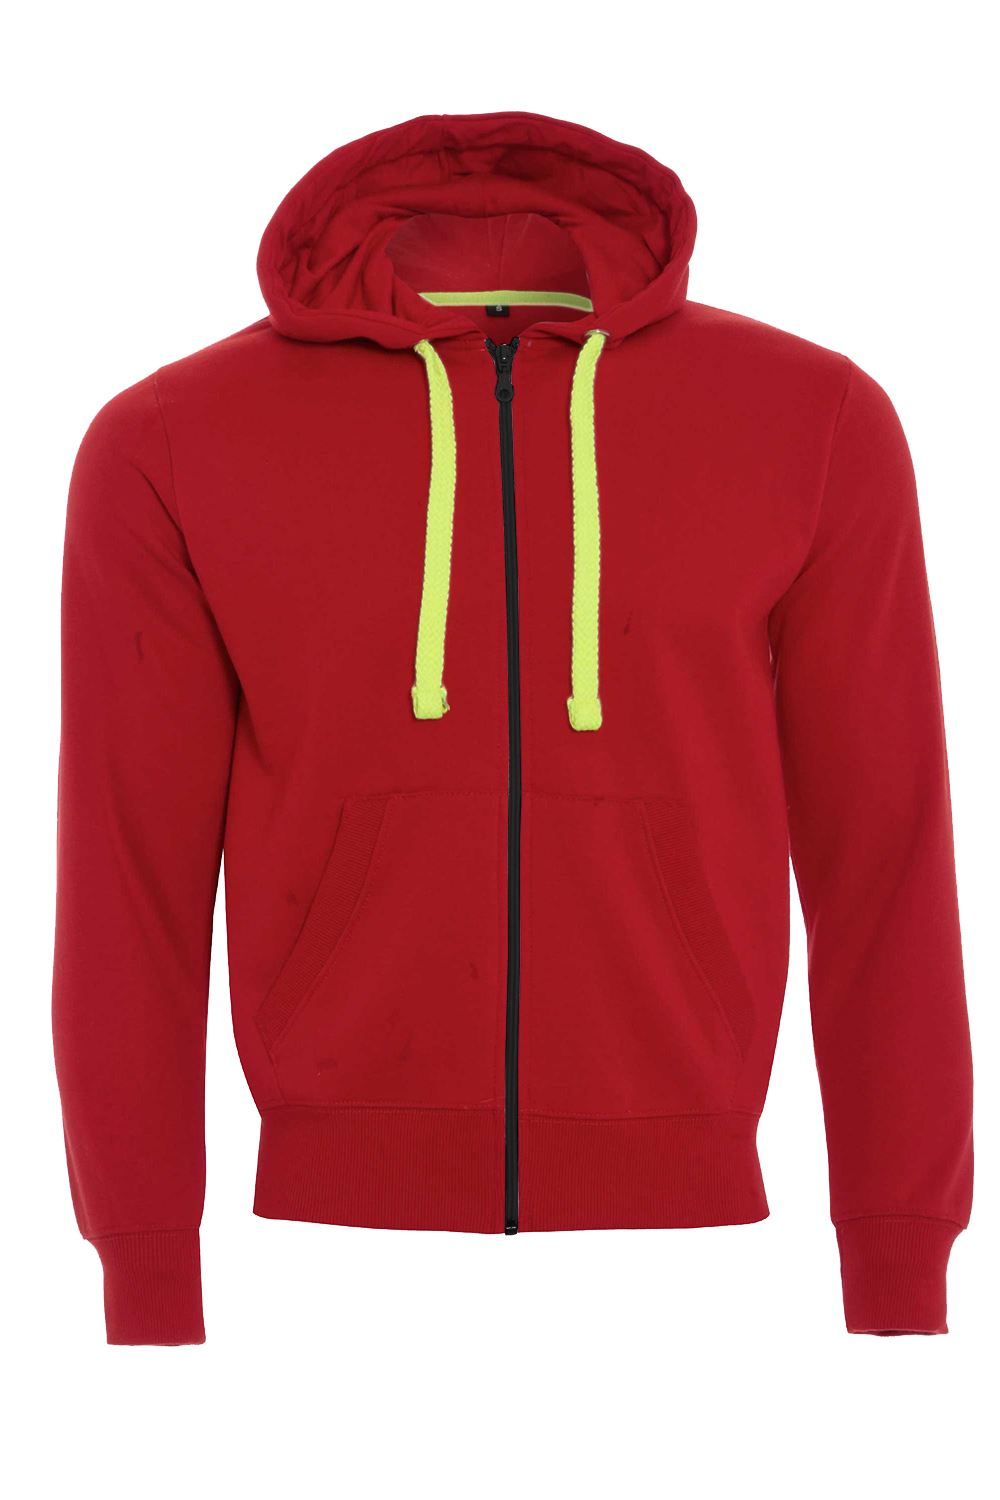 Mens Fleece Zip Up Neon Strings Zipper Hoodies Long Sleeve Sweatshirt Jacket Top